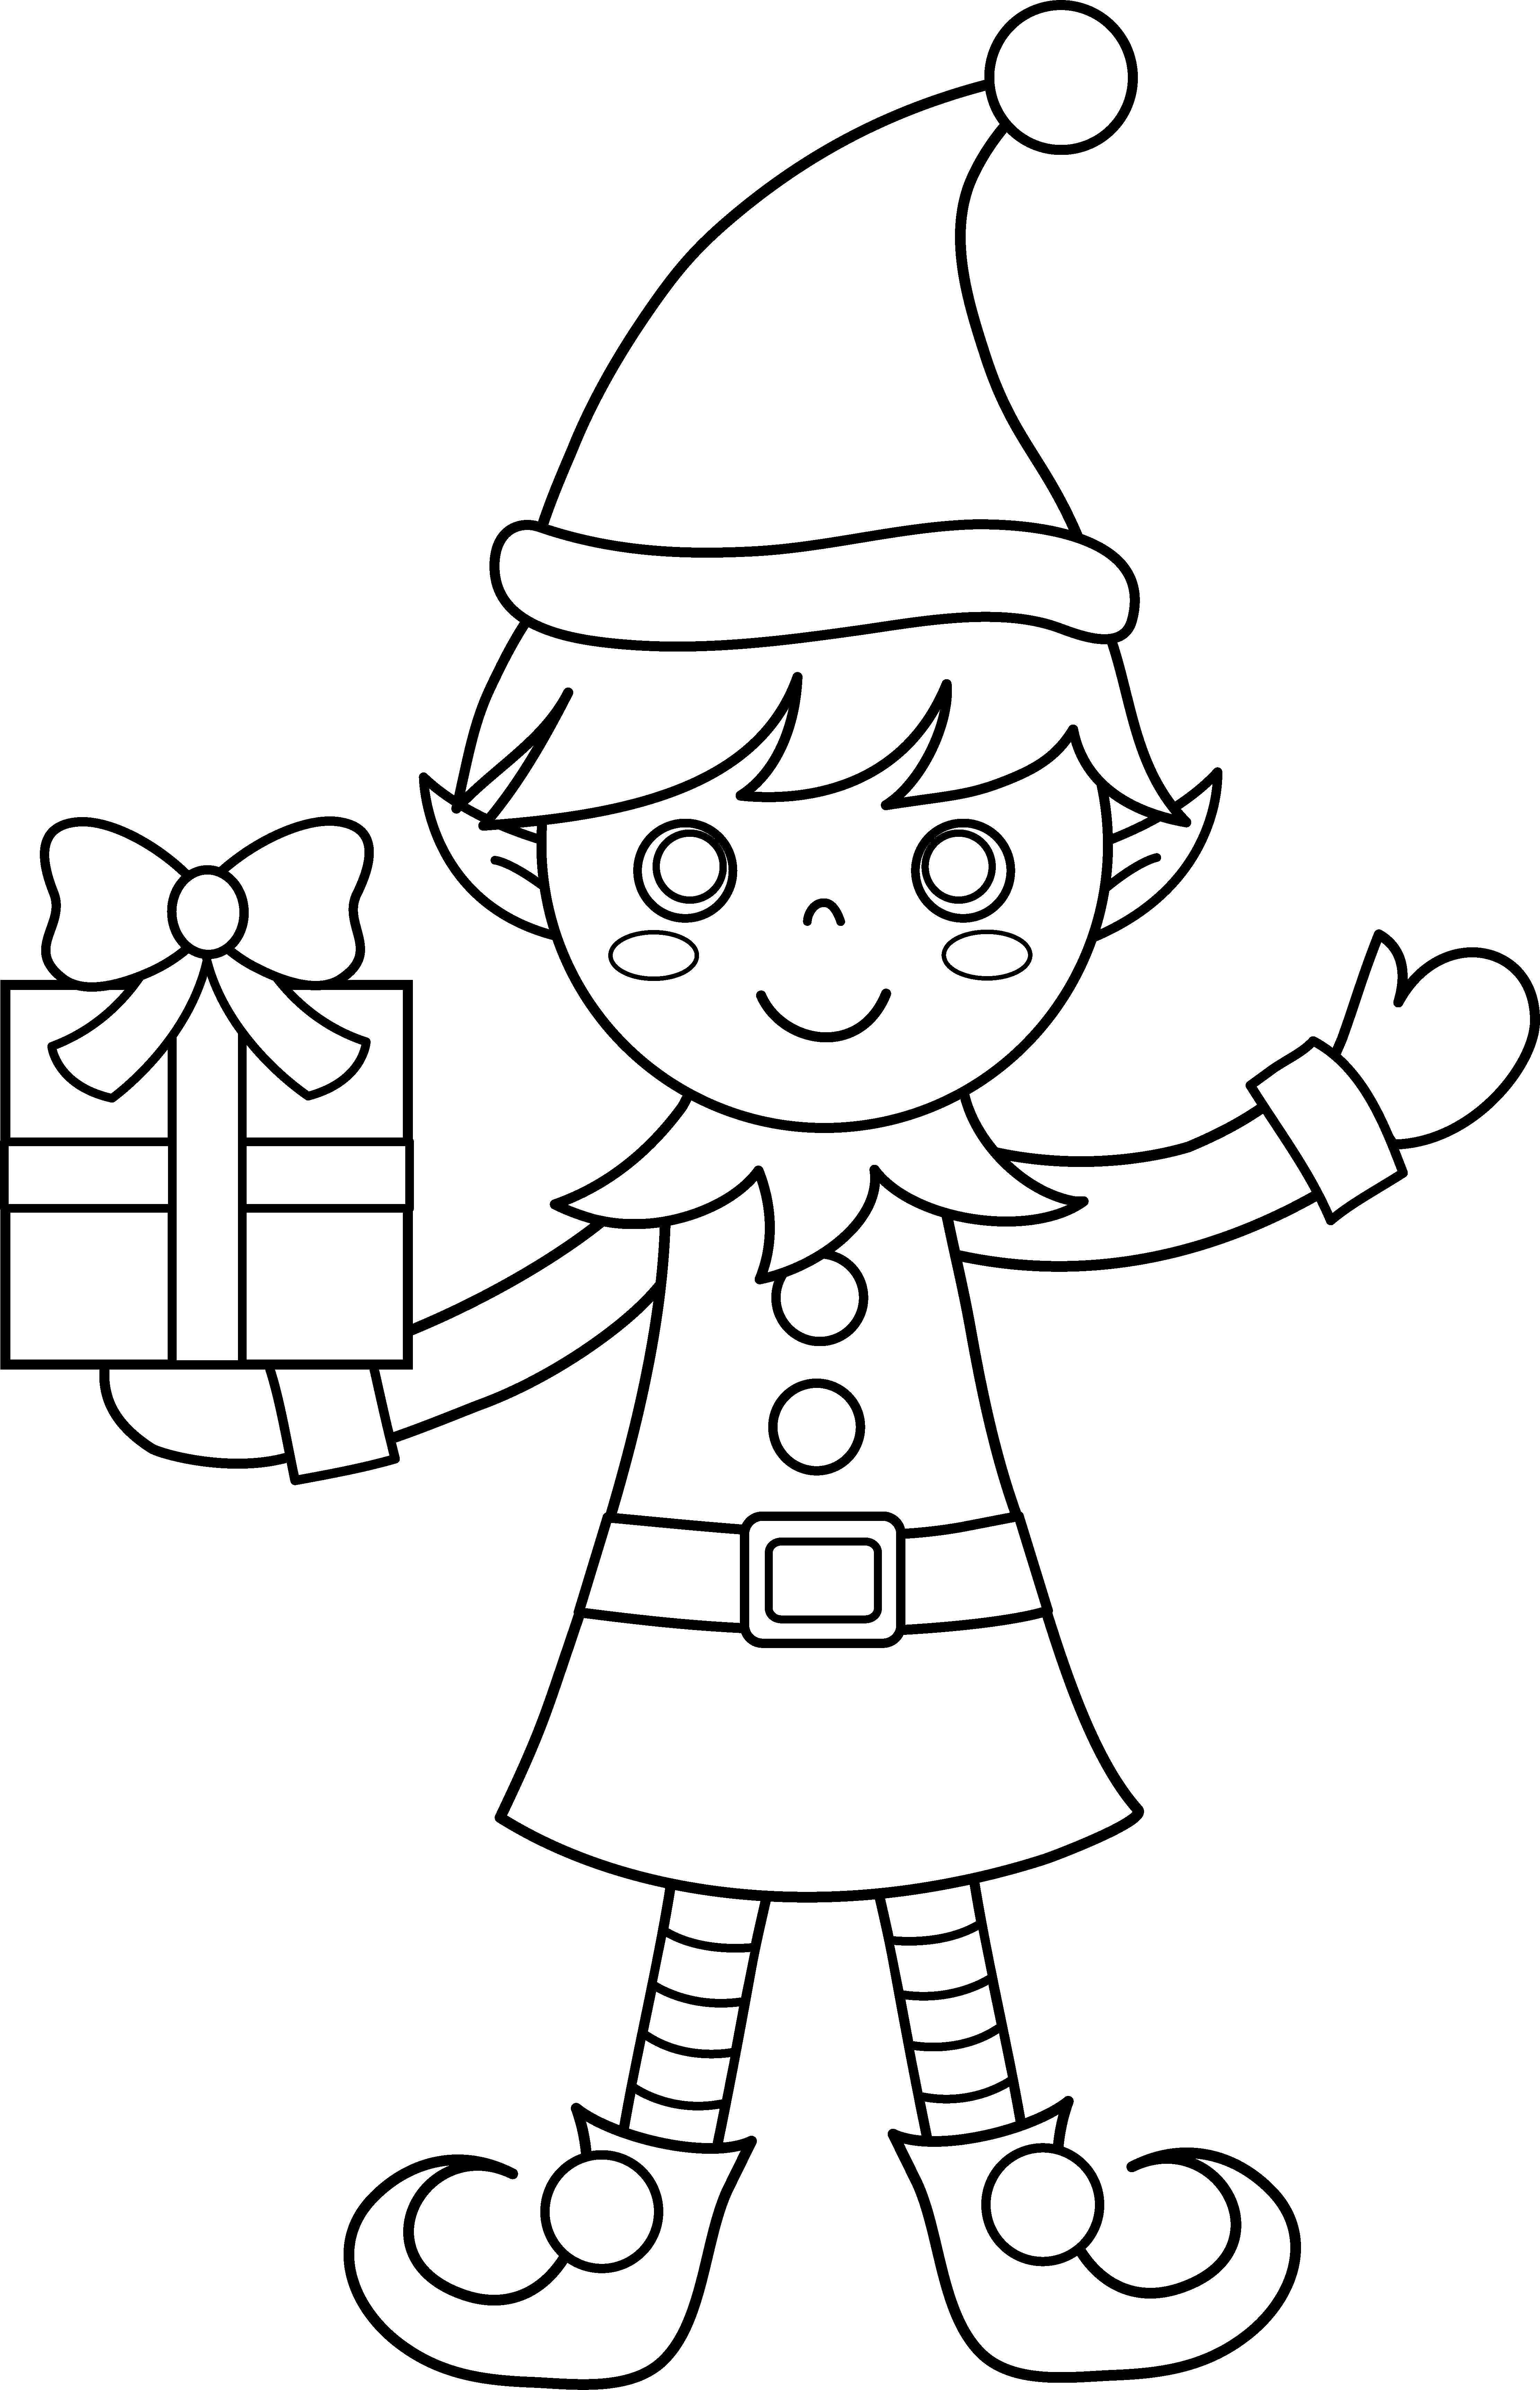 Christmas elf clipart black and white clip art royalty free stock Christmas Elf Coloring Page - Free Clip Art clip art royalty free stock